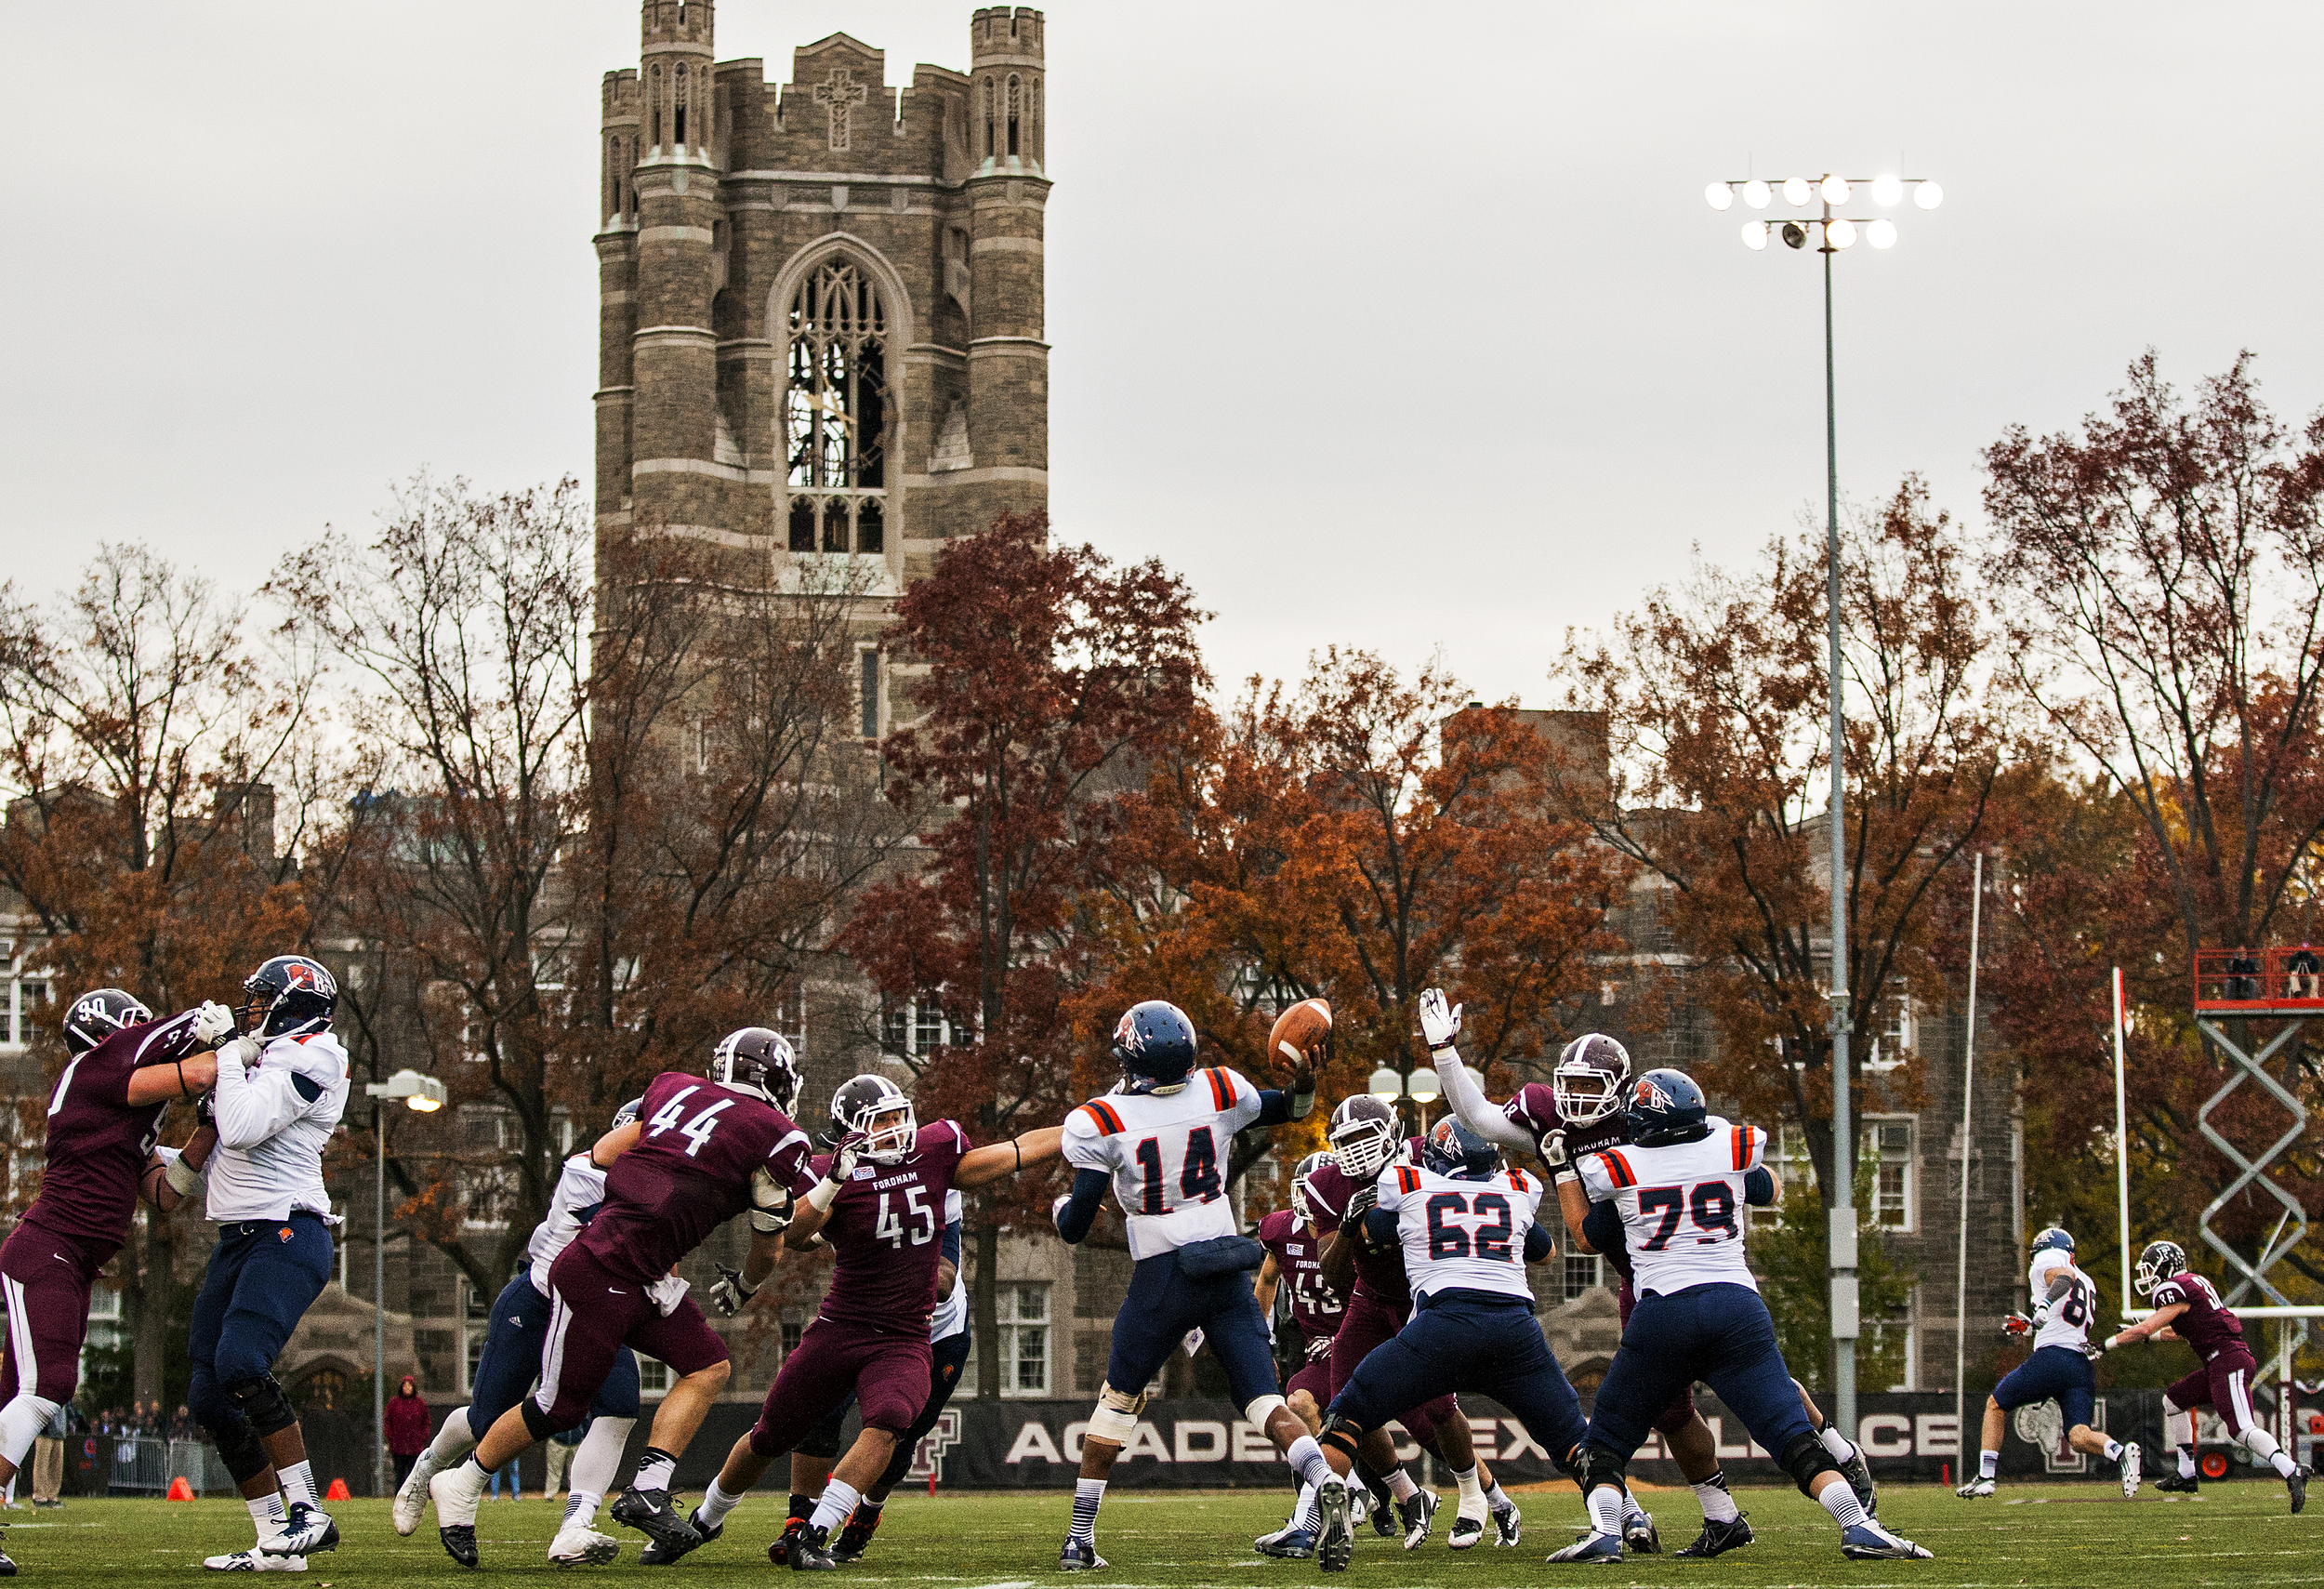 Bucknell quarterback Brandon Wesley (14) throws the ball with Fordham University's Keating Hall in the background during the NCAA FCS football game played between the schools at Jack Coffey Field in Bronx, N.Y. on Nov. 9, 2013.